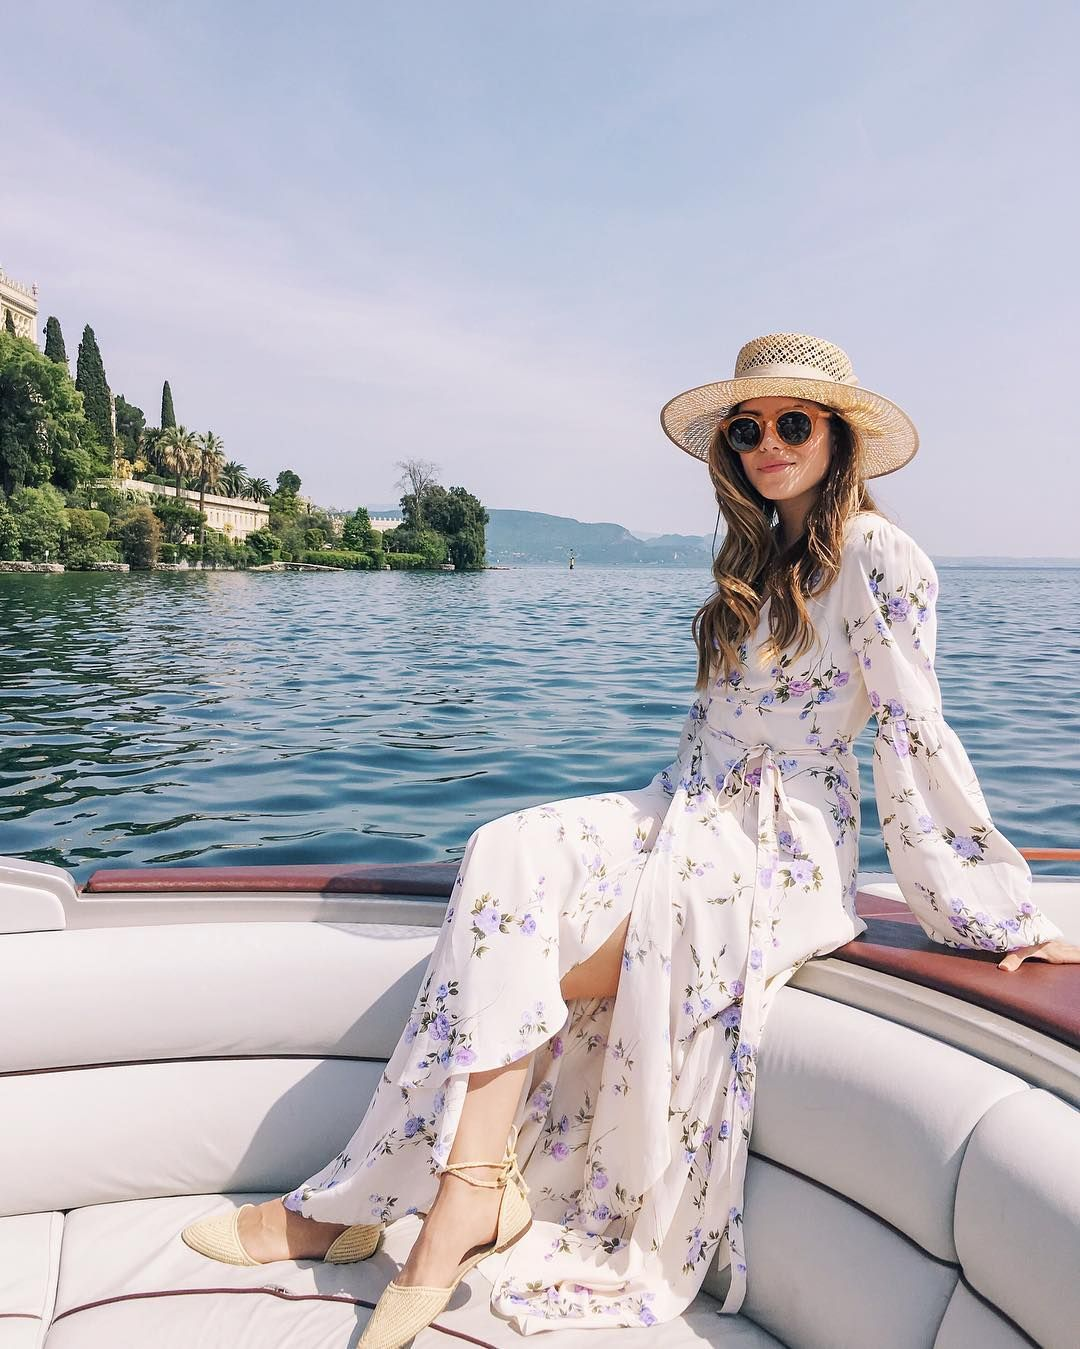 Celebrity Mansion Women S Rights In Europe By Julia: Fashion, Vacation Style